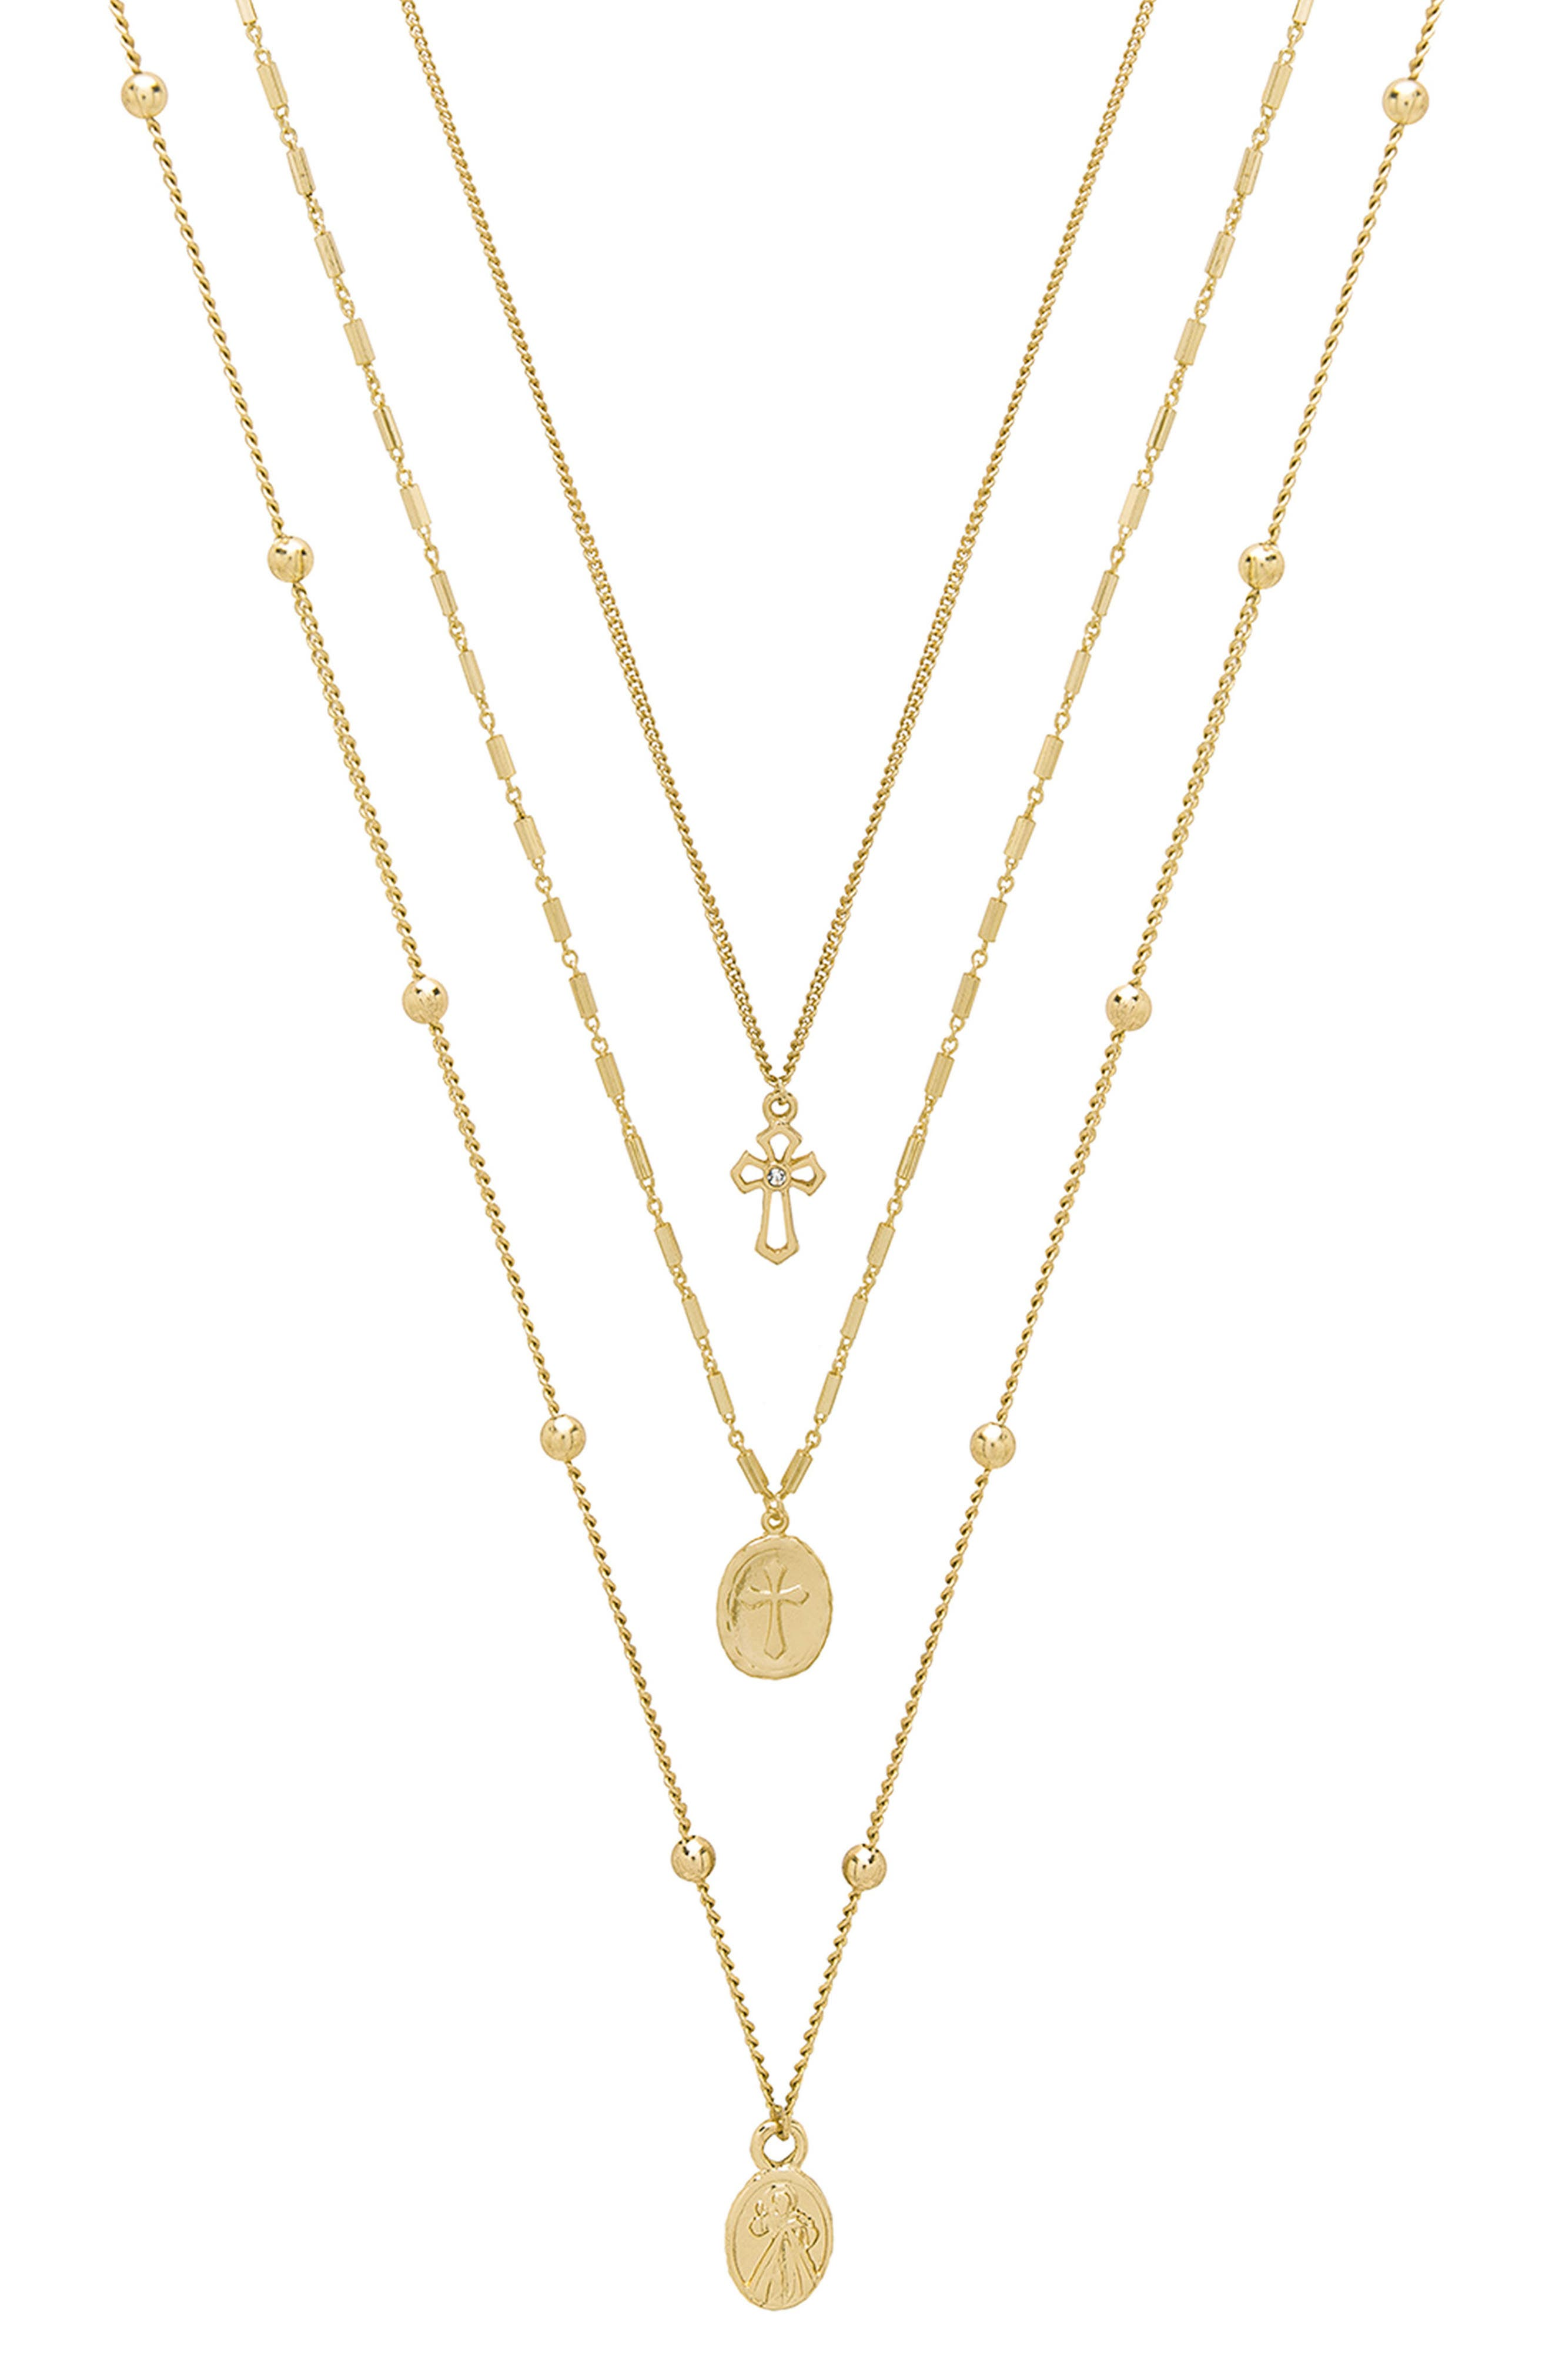 Set of 3 Cross Necklaces,                             Main thumbnail 1, color,                             GOLD